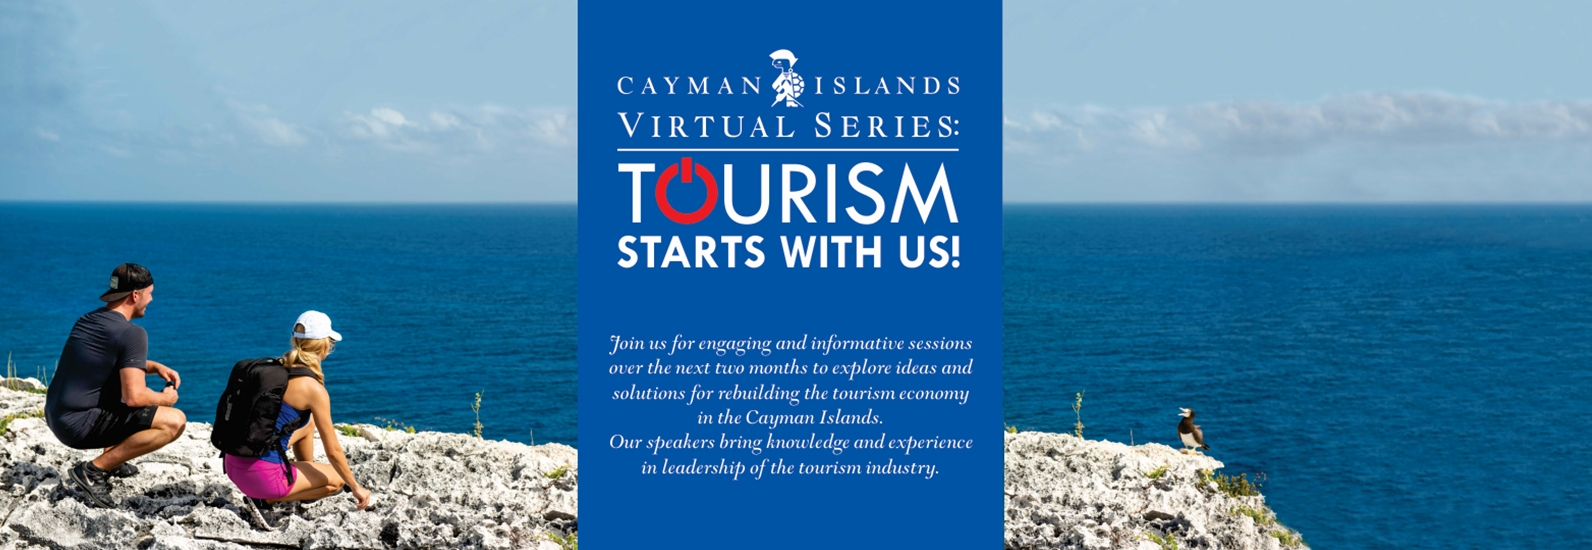 Cayman Islands  Virtual Series: Tourism Starts with us!